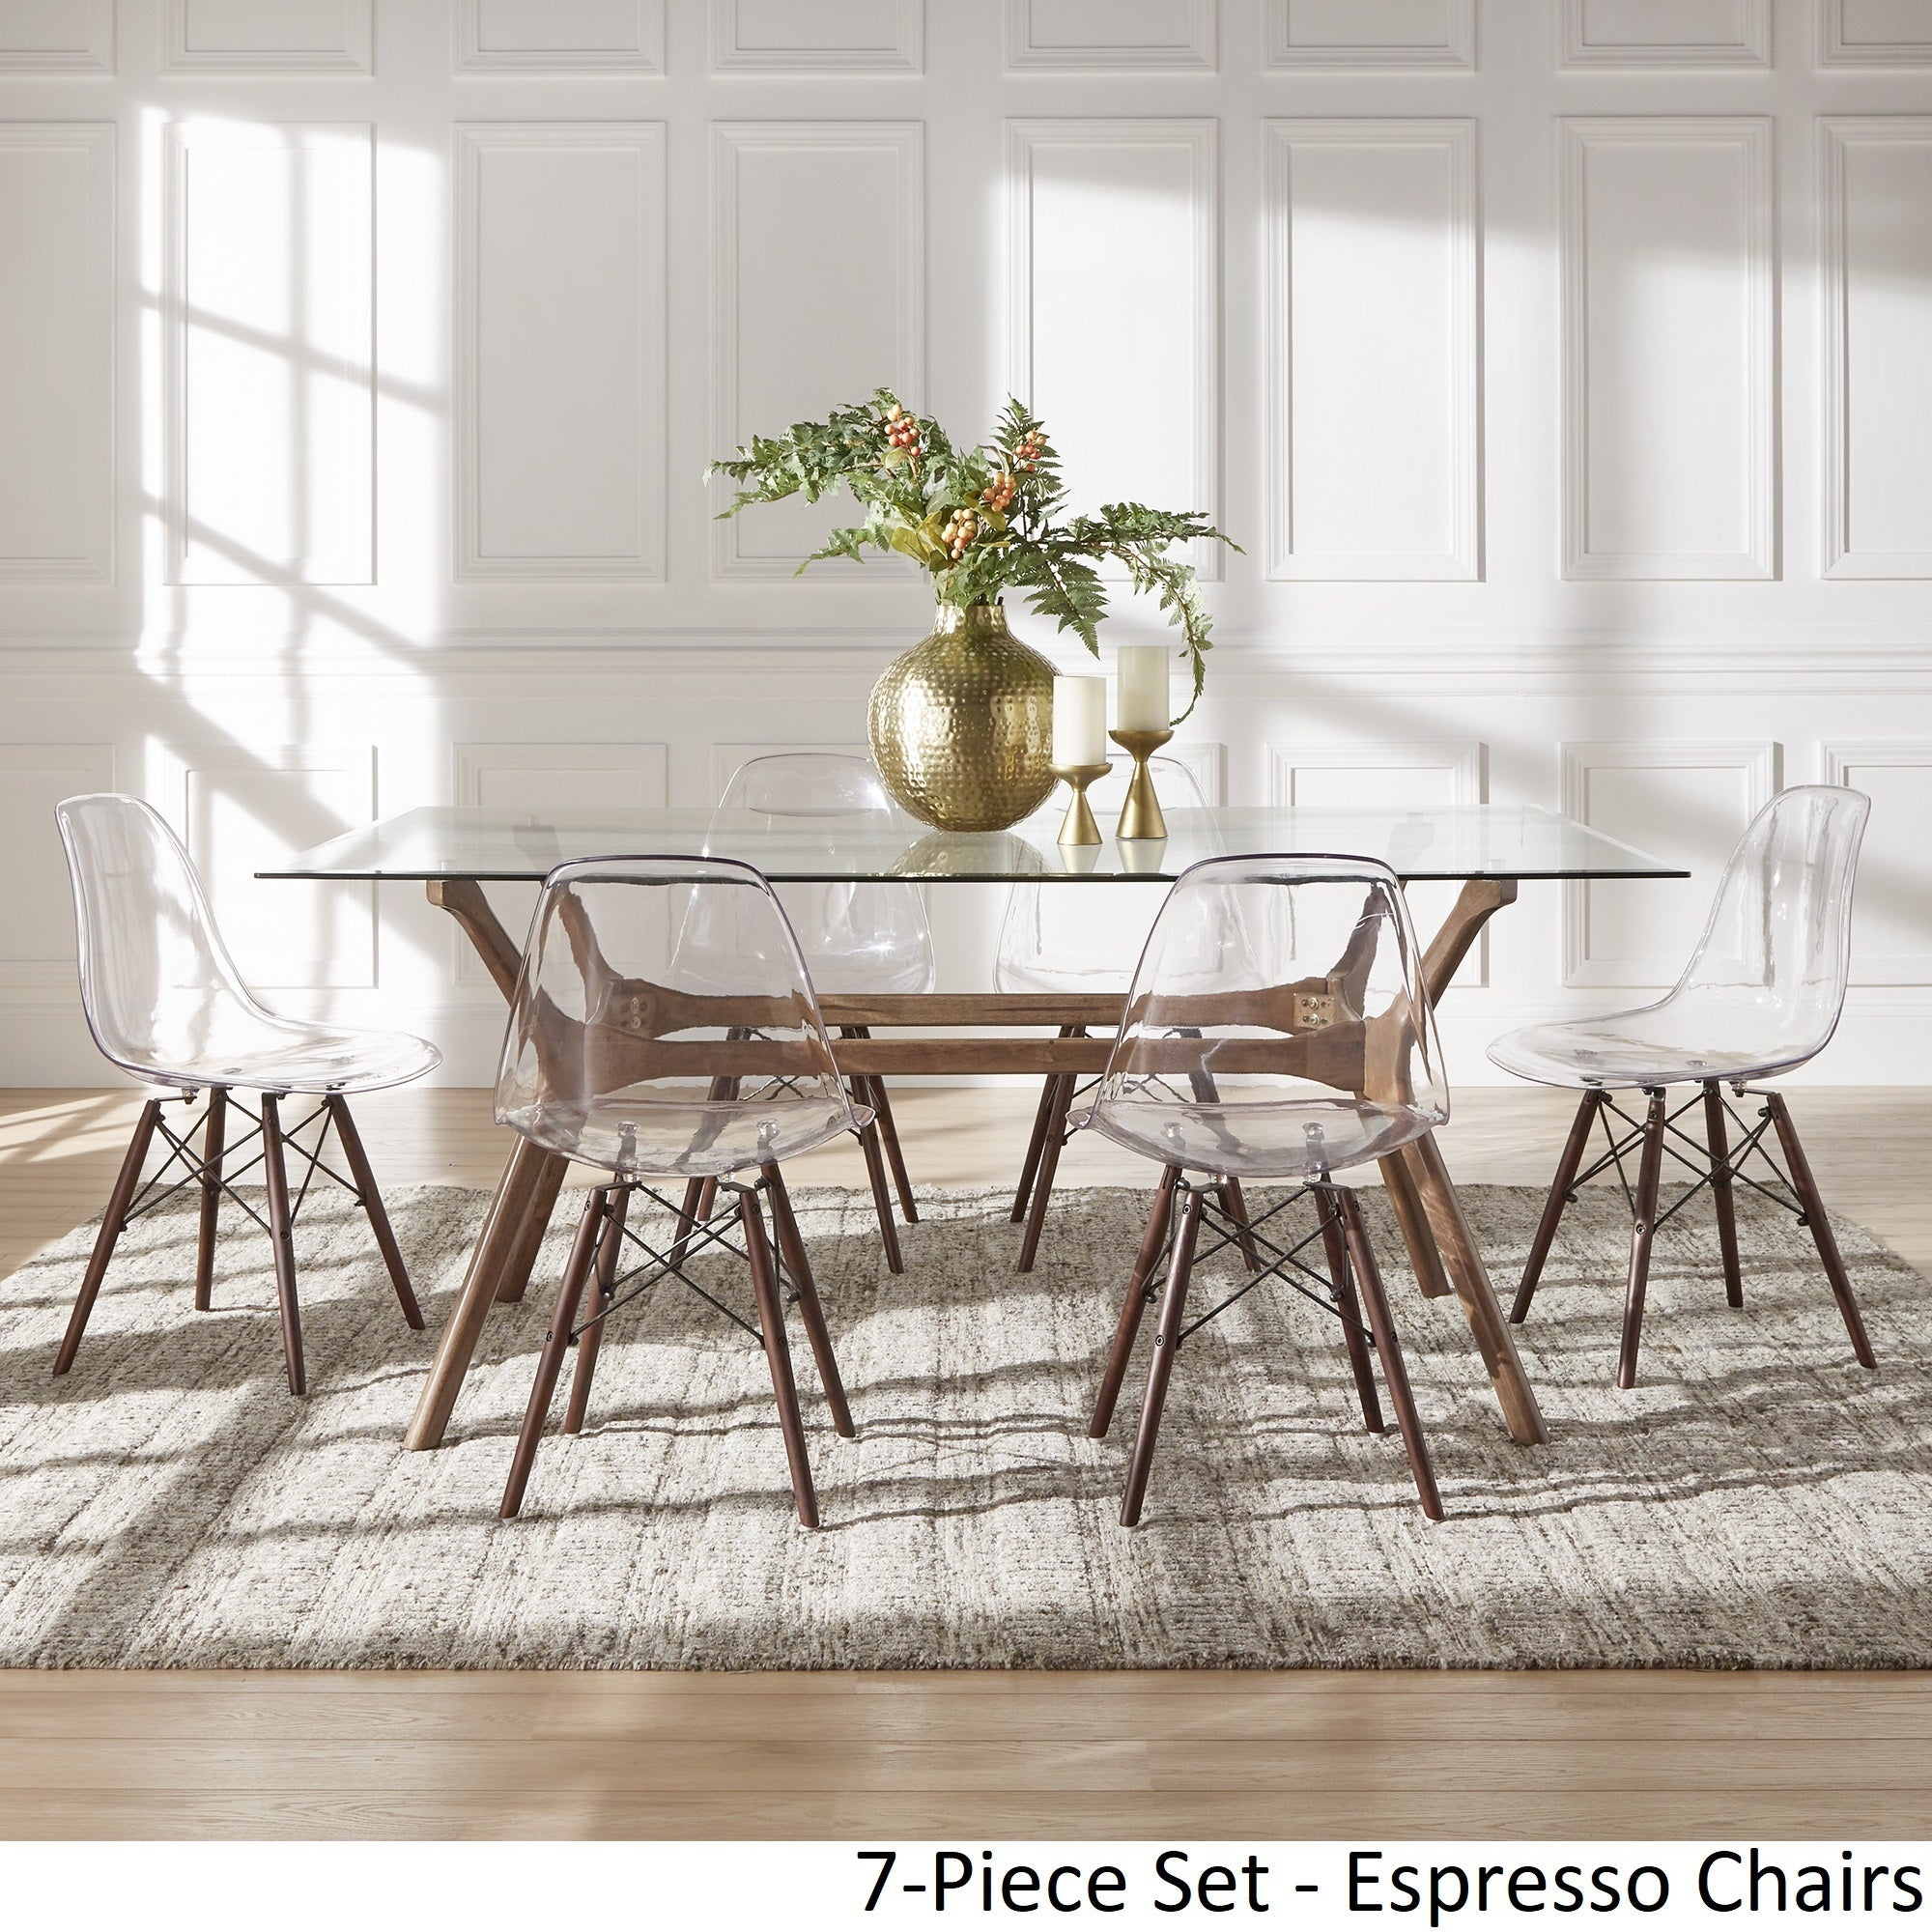 Nadine Walnut Finish Glass Table Top Rectangular Dining Set - Clear Chairs  by iNSPIRE Q Modern - Free Shipping Today - Overstock.com - 24360002